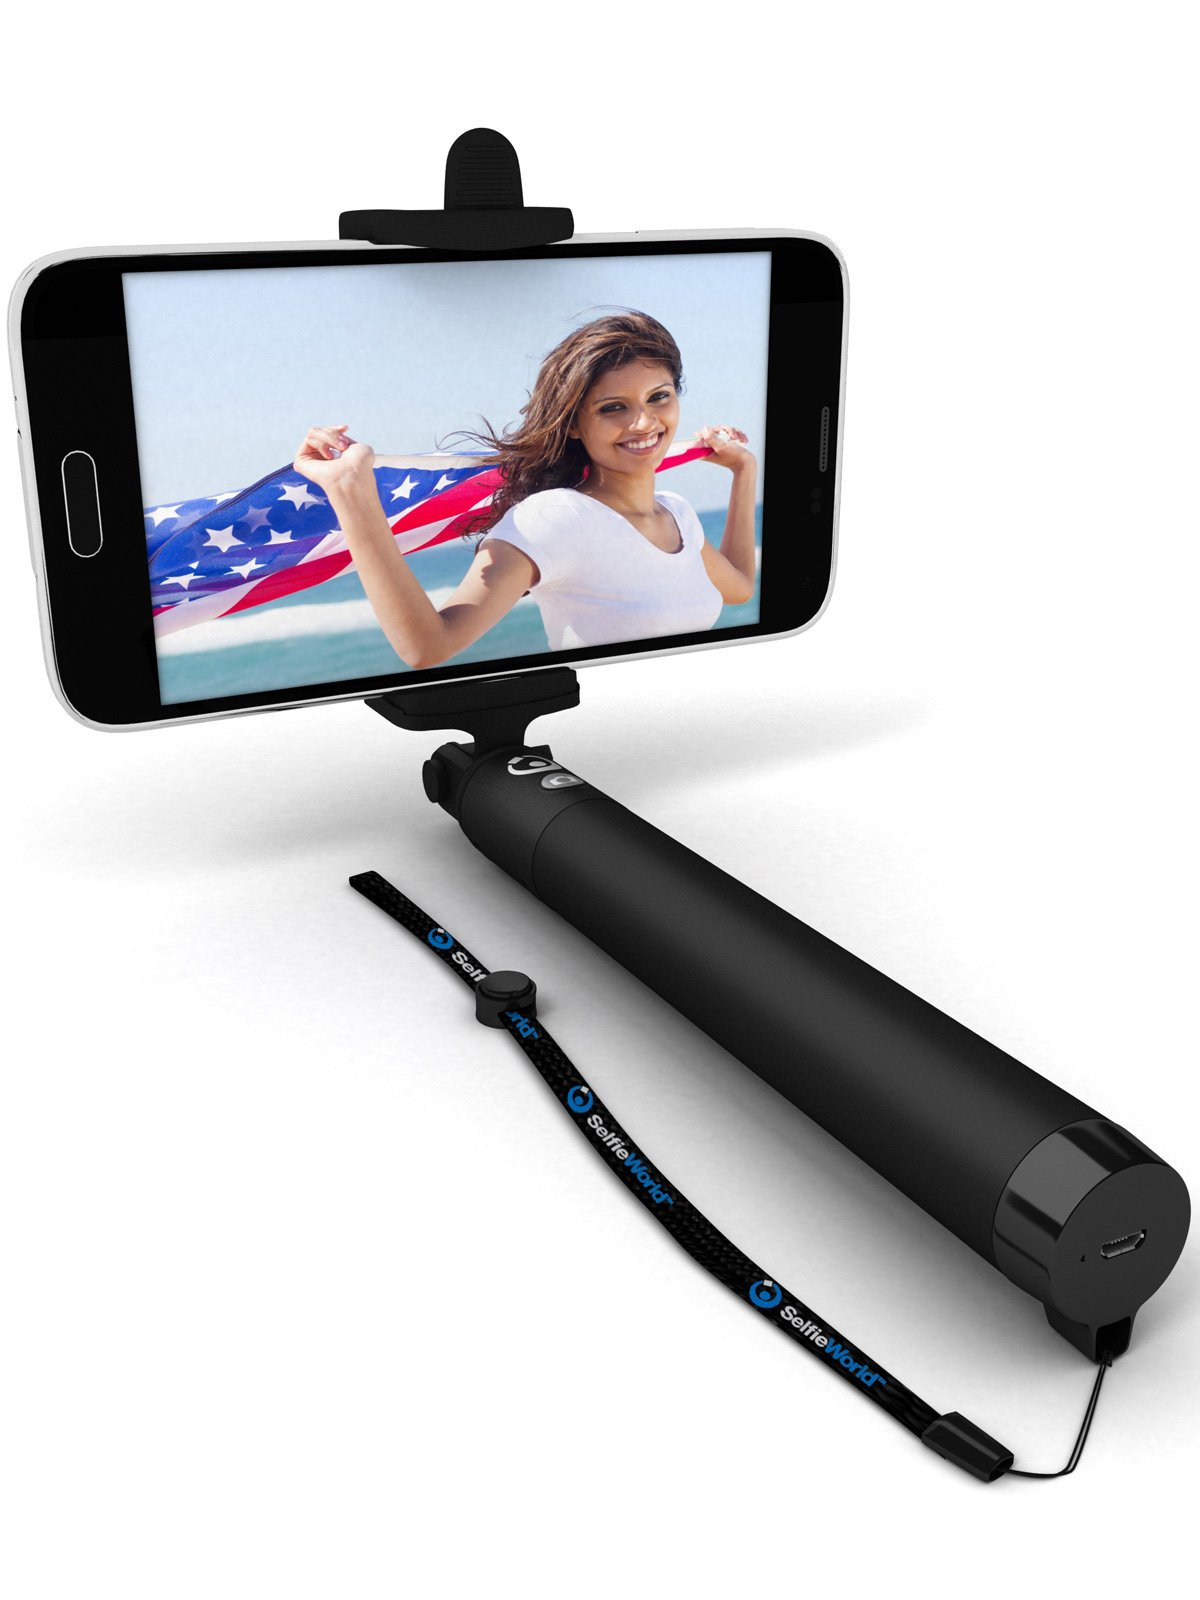 Premium 5-in-1 Bluetooth Selfie Stick for iPhone X XR XS 10 8 7 6 5, Samsung Galaxy S10 S9 S8 S7 S6 S5, Android - Selfie Sticks (Powered by USA Technology) Requires No Apps No Batteries No Downloads by Selfie World